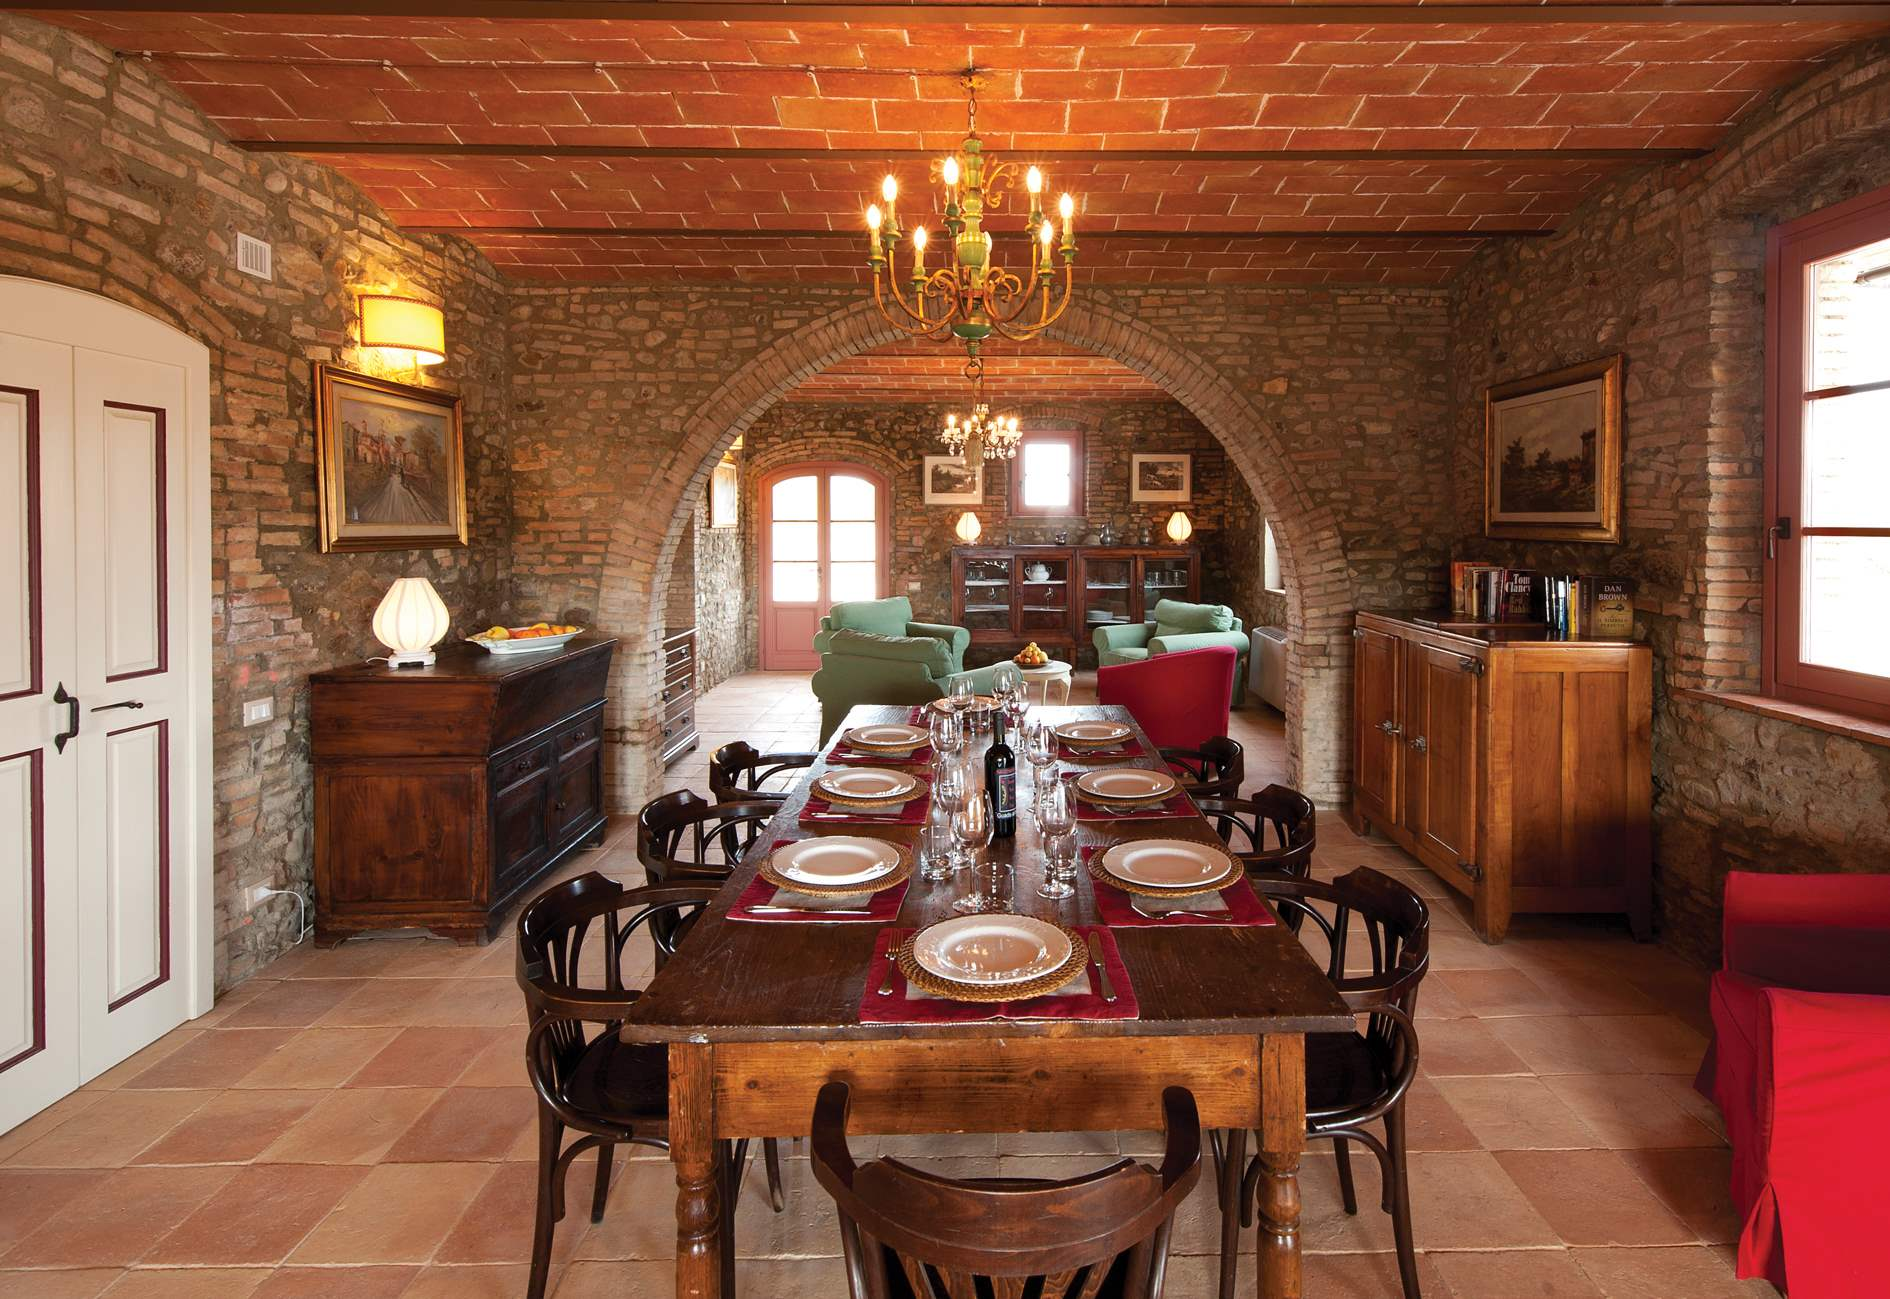 Podere I Gotti, 5 bedroom villa in Tuscany Coast, Tuscany Photo #4